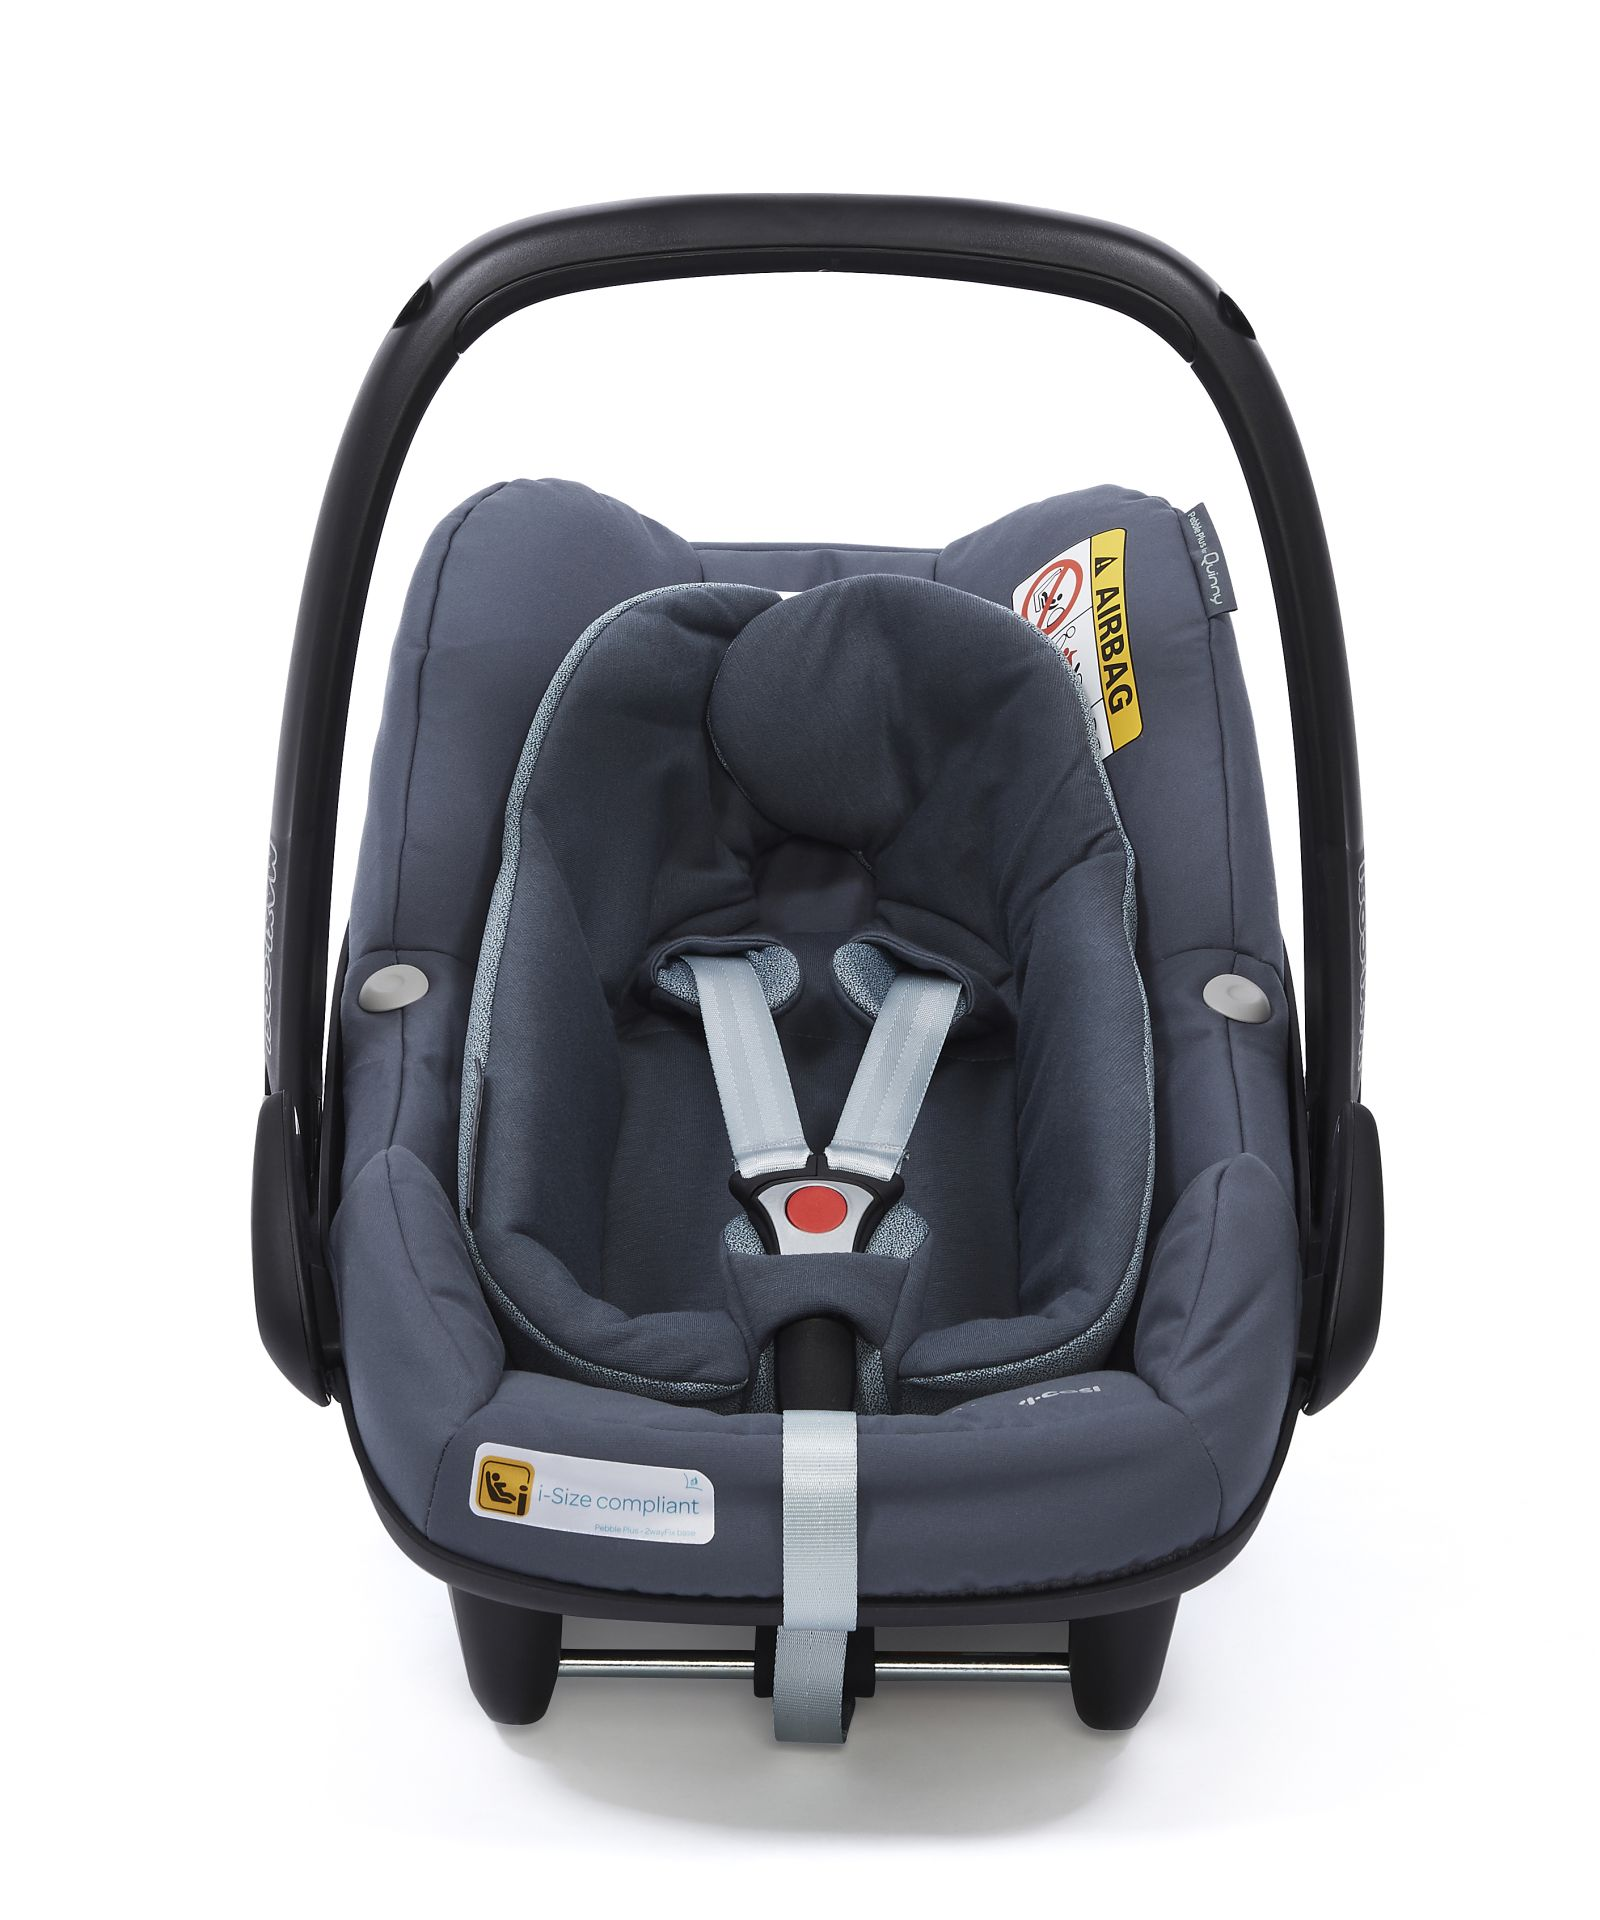 maxi cosi infant car seat pebble plus including 2wayfix 2018 graphite buy at kidsroom car seats. Black Bedroom Furniture Sets. Home Design Ideas